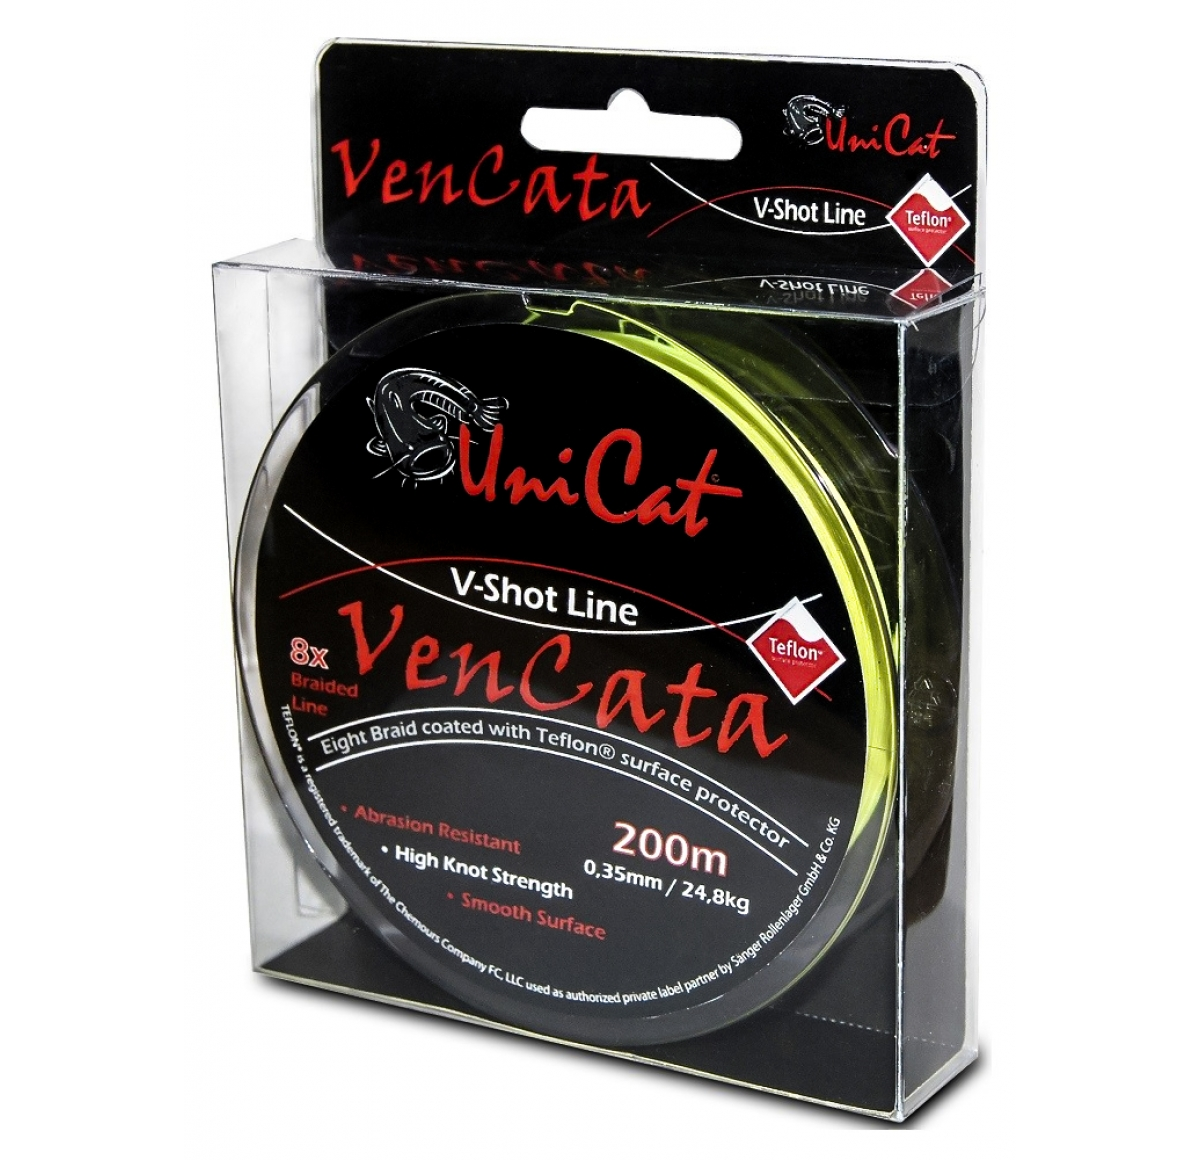 UNI CAT Vencata V Shot Line 8x 0.40mm 32.4kg Fluo Yellow 200m